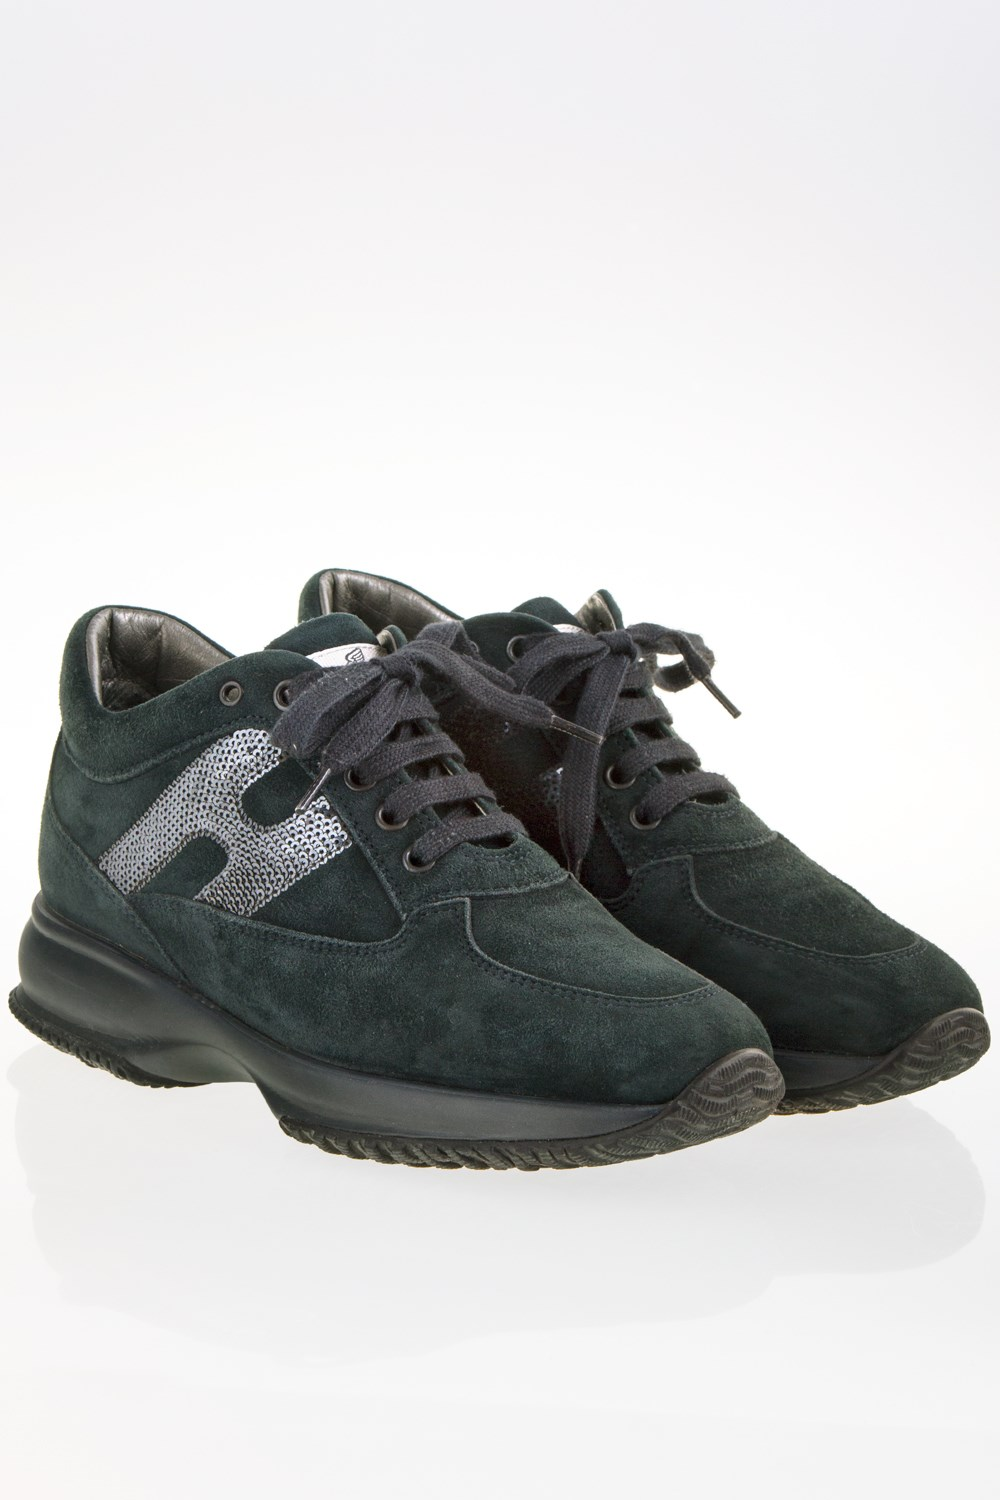 Petrol Suede Interactive Sneakers   Size  36 - Fit  37 27b4ca9fadd